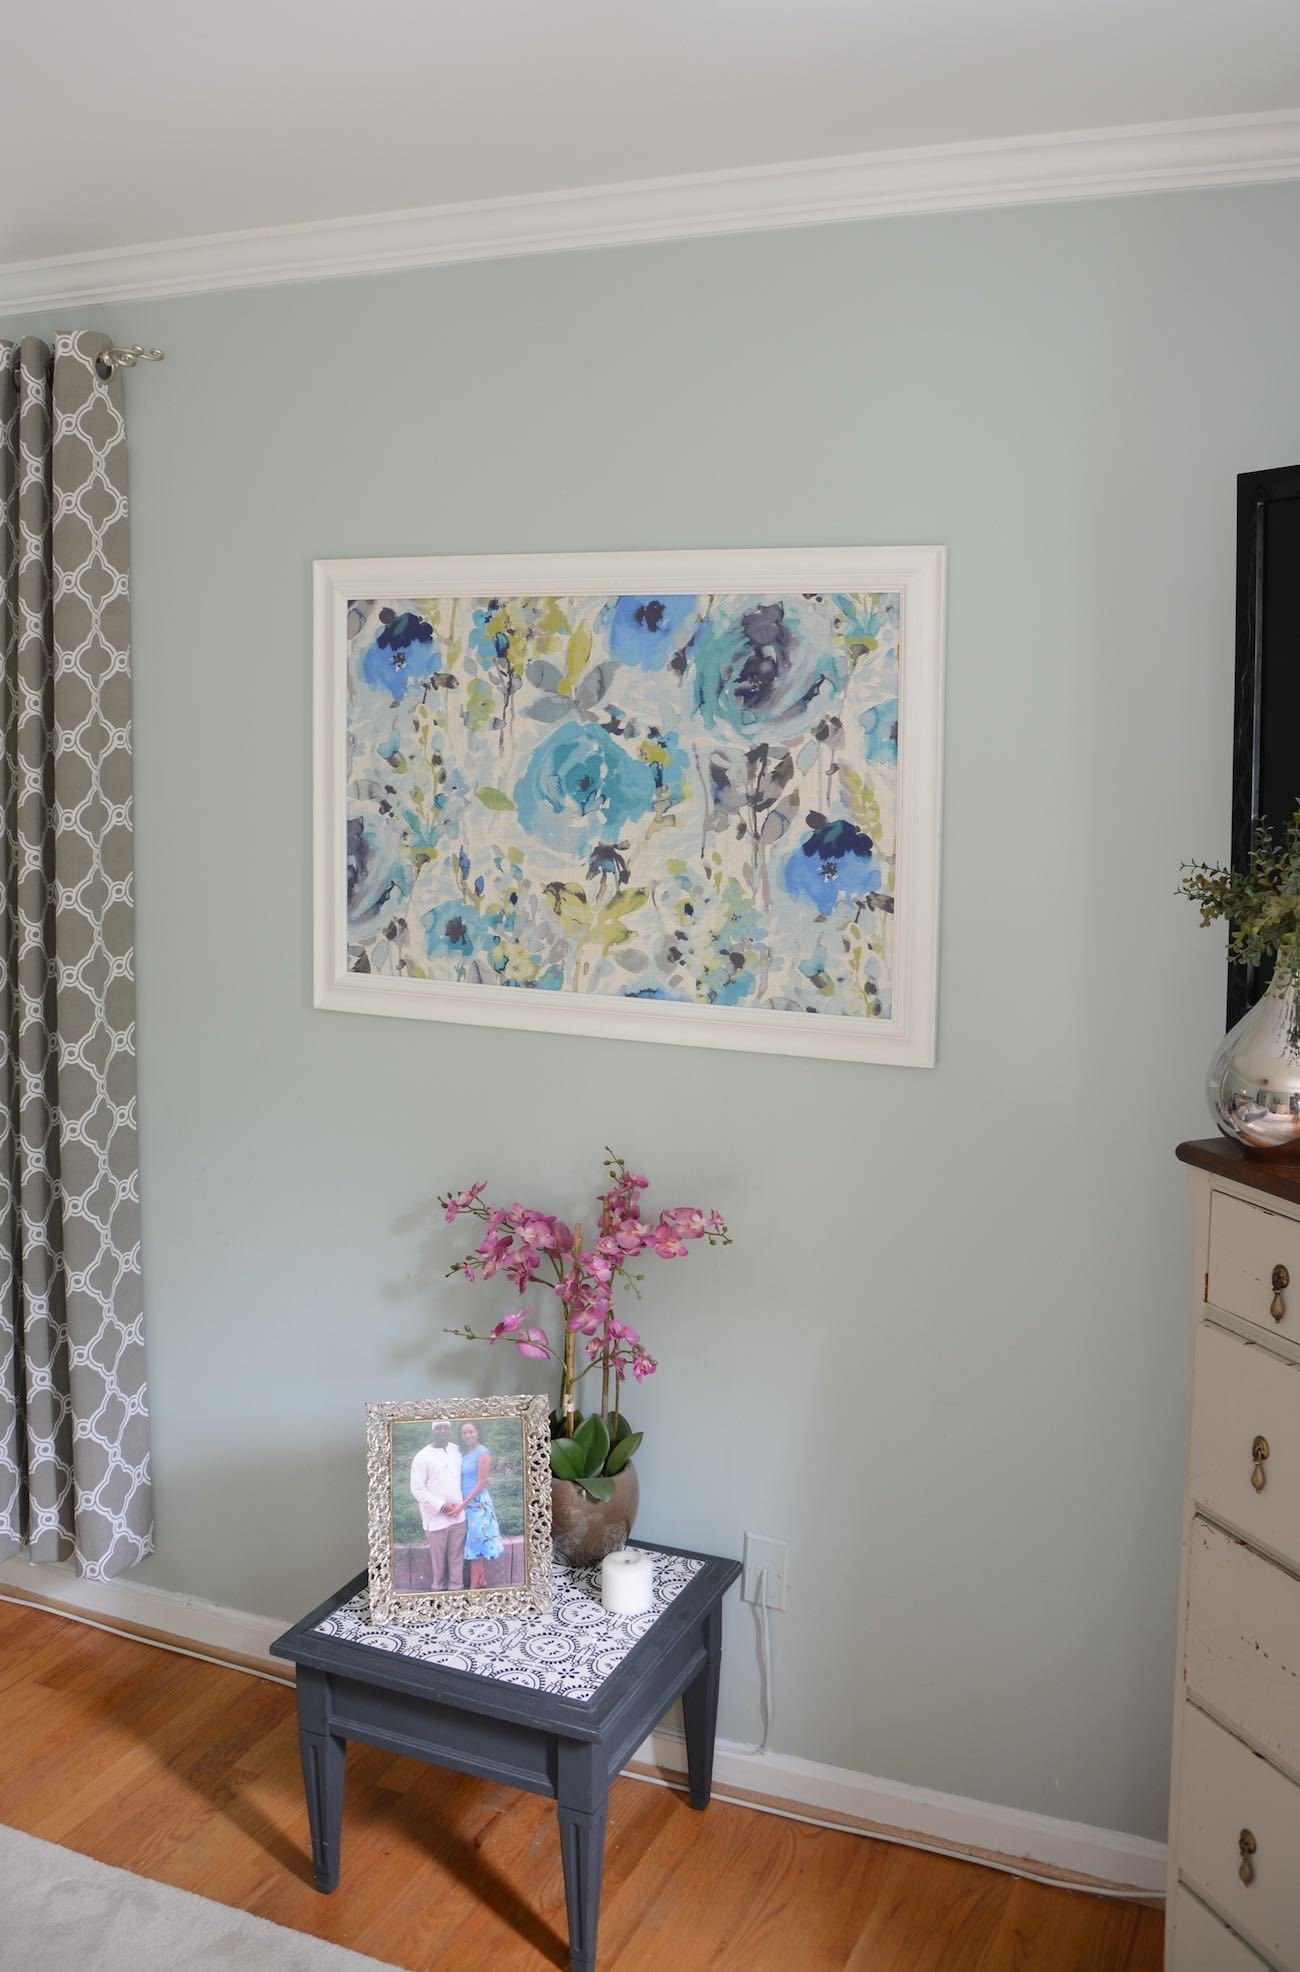 Best How To Frame Fabric For Wall Art With A Picture Frame With Pictures